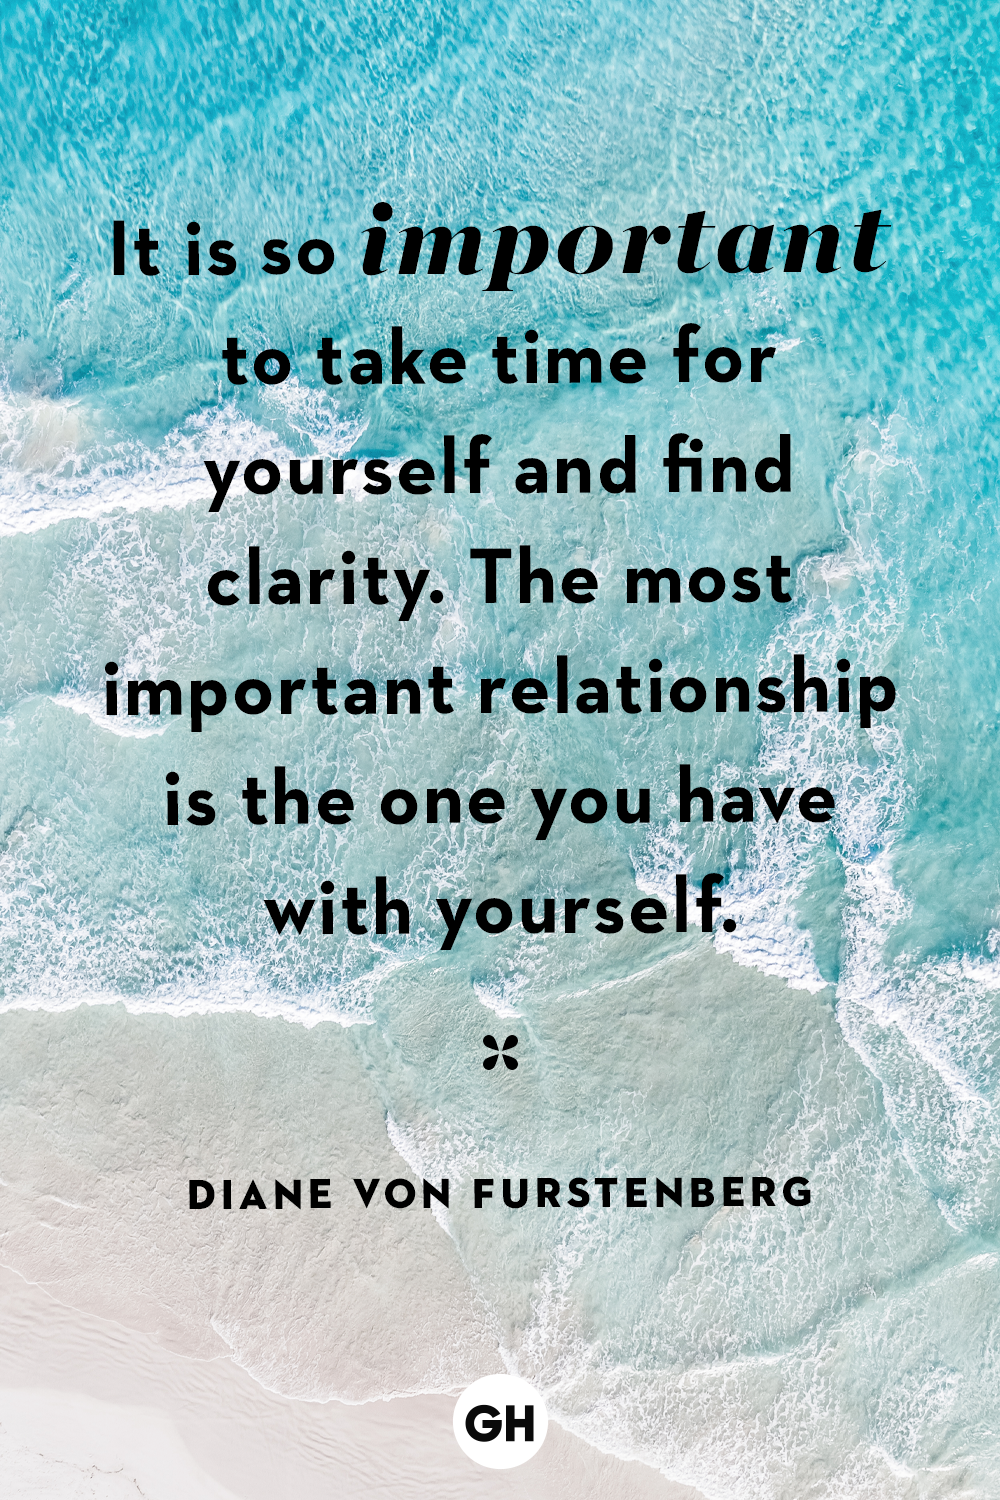 5 Self-Care Quotes That Inspire Us - Take Care of Yourself Quotes